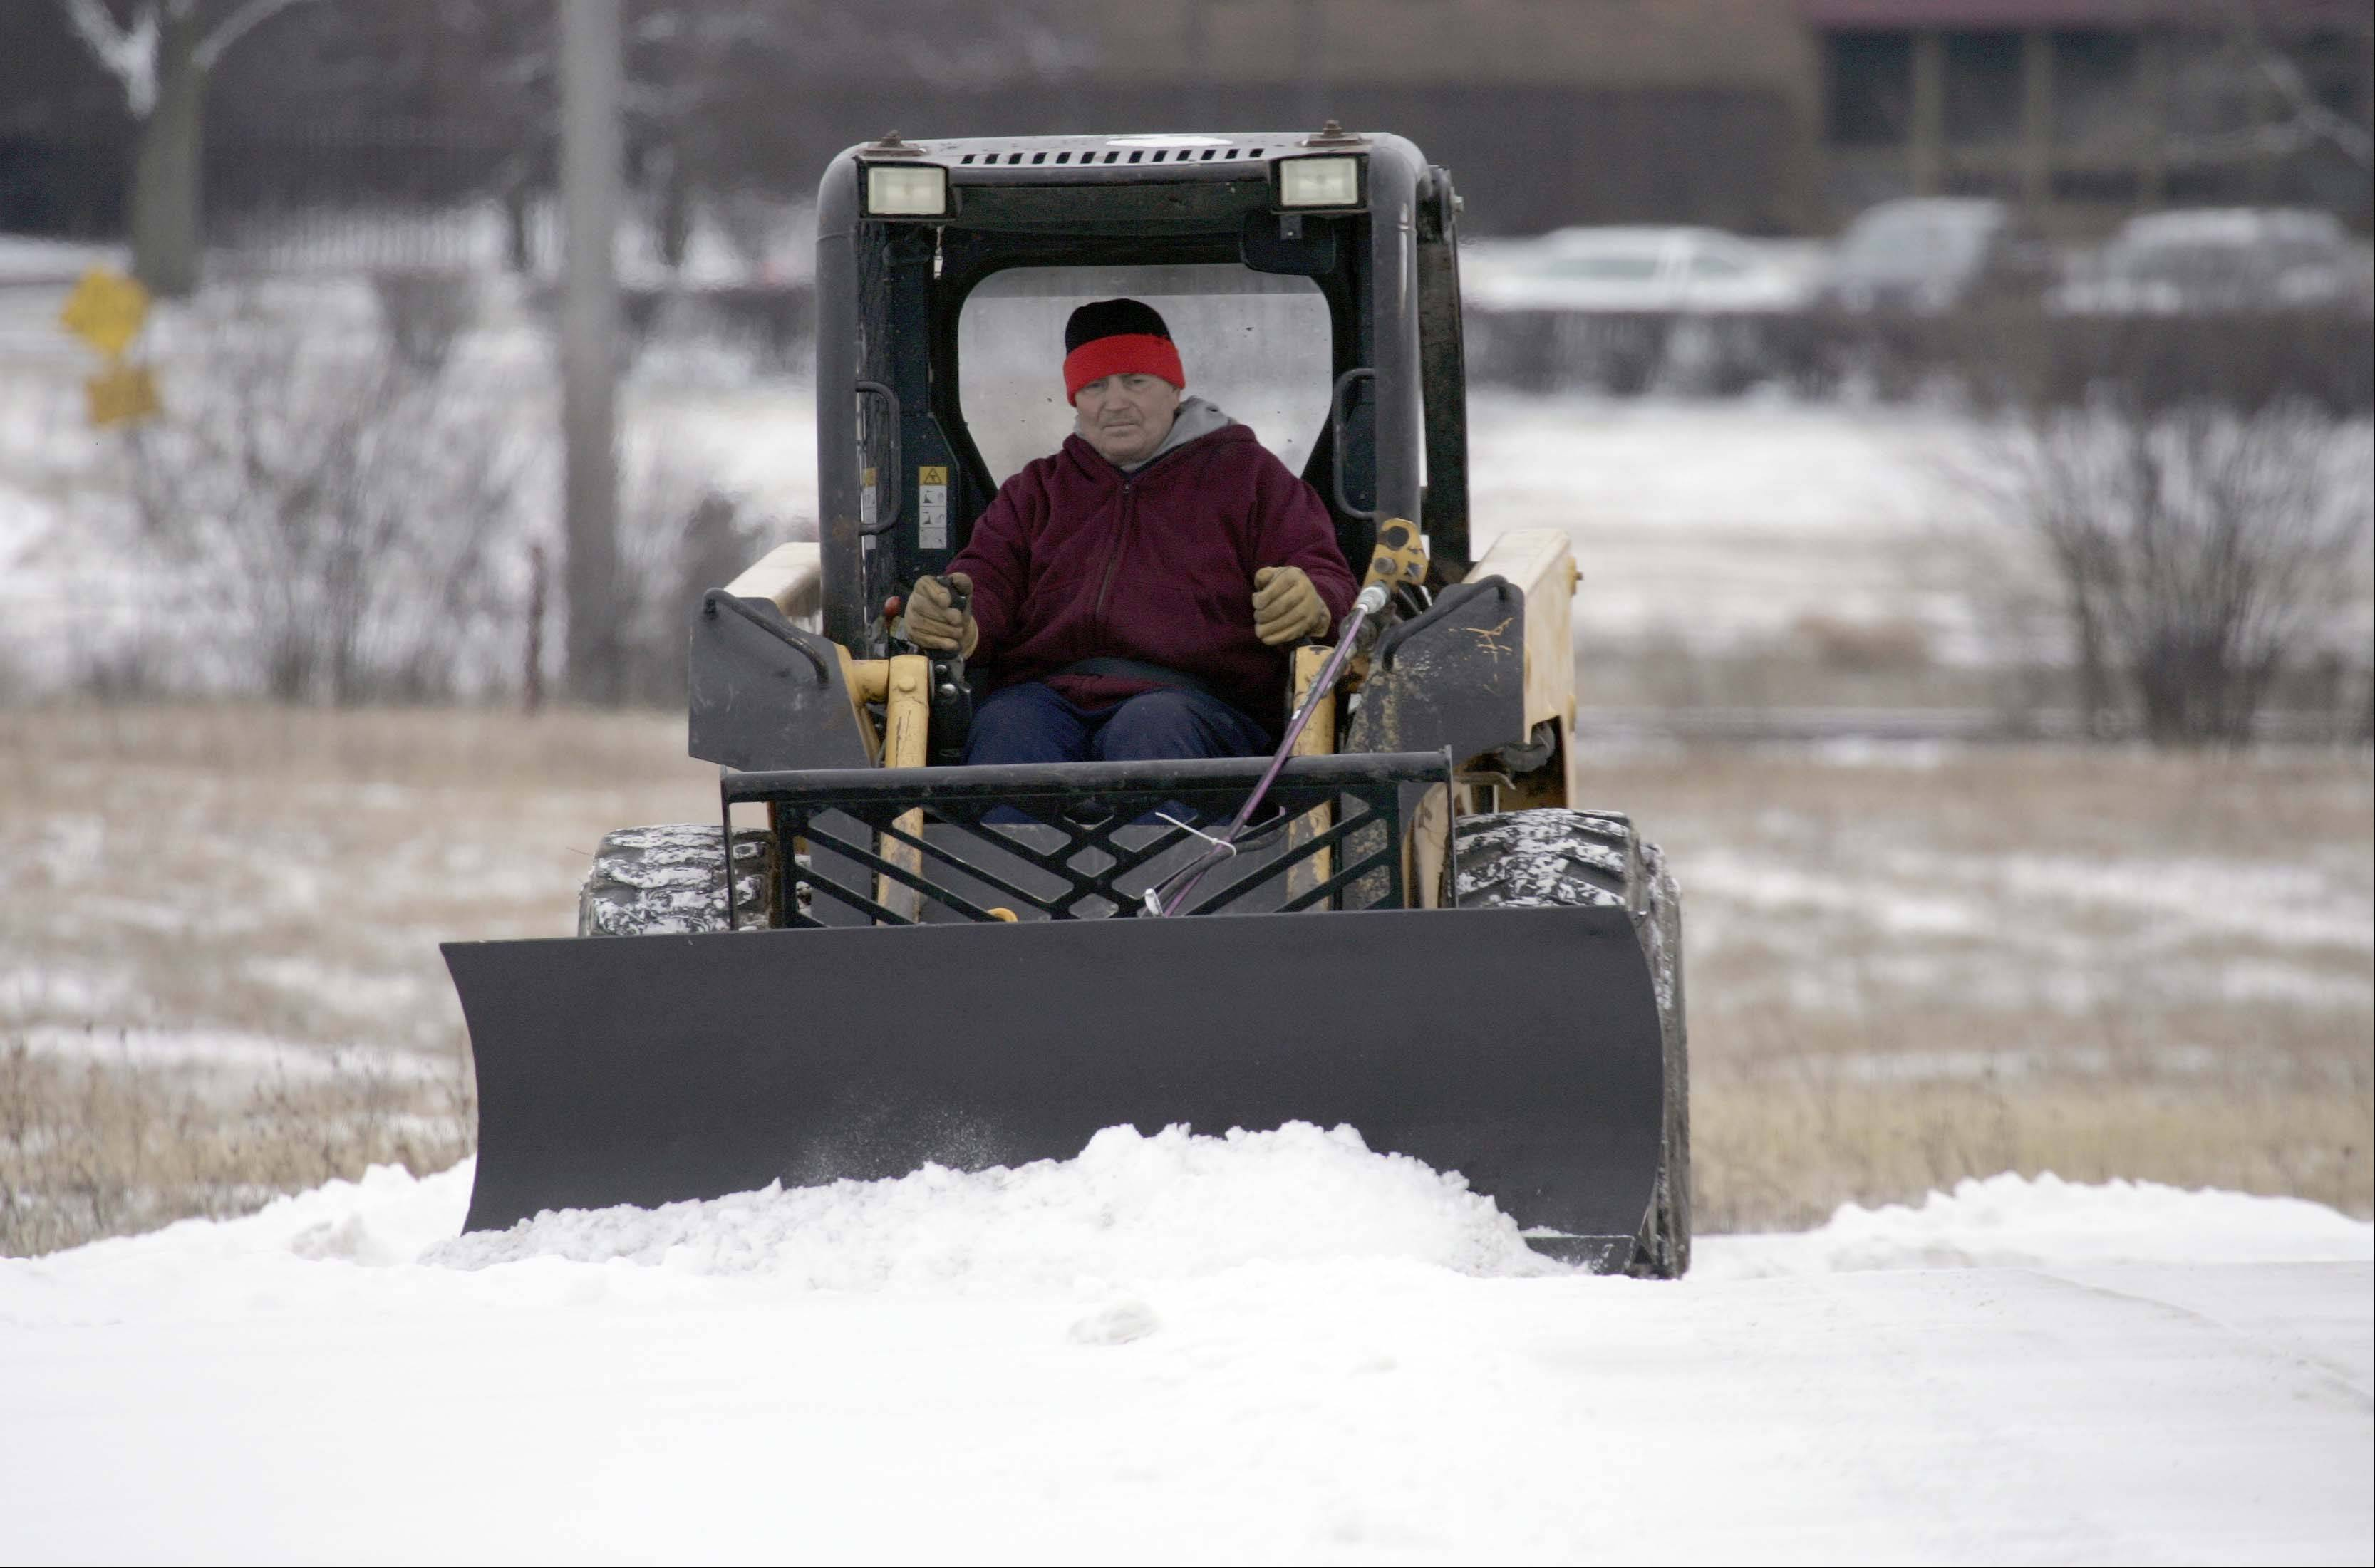 Mike Stalka of Amaya out of Aurora clears snow at the Foundry Business Park in St. Charles after a minimal snowfall early Friday morning.